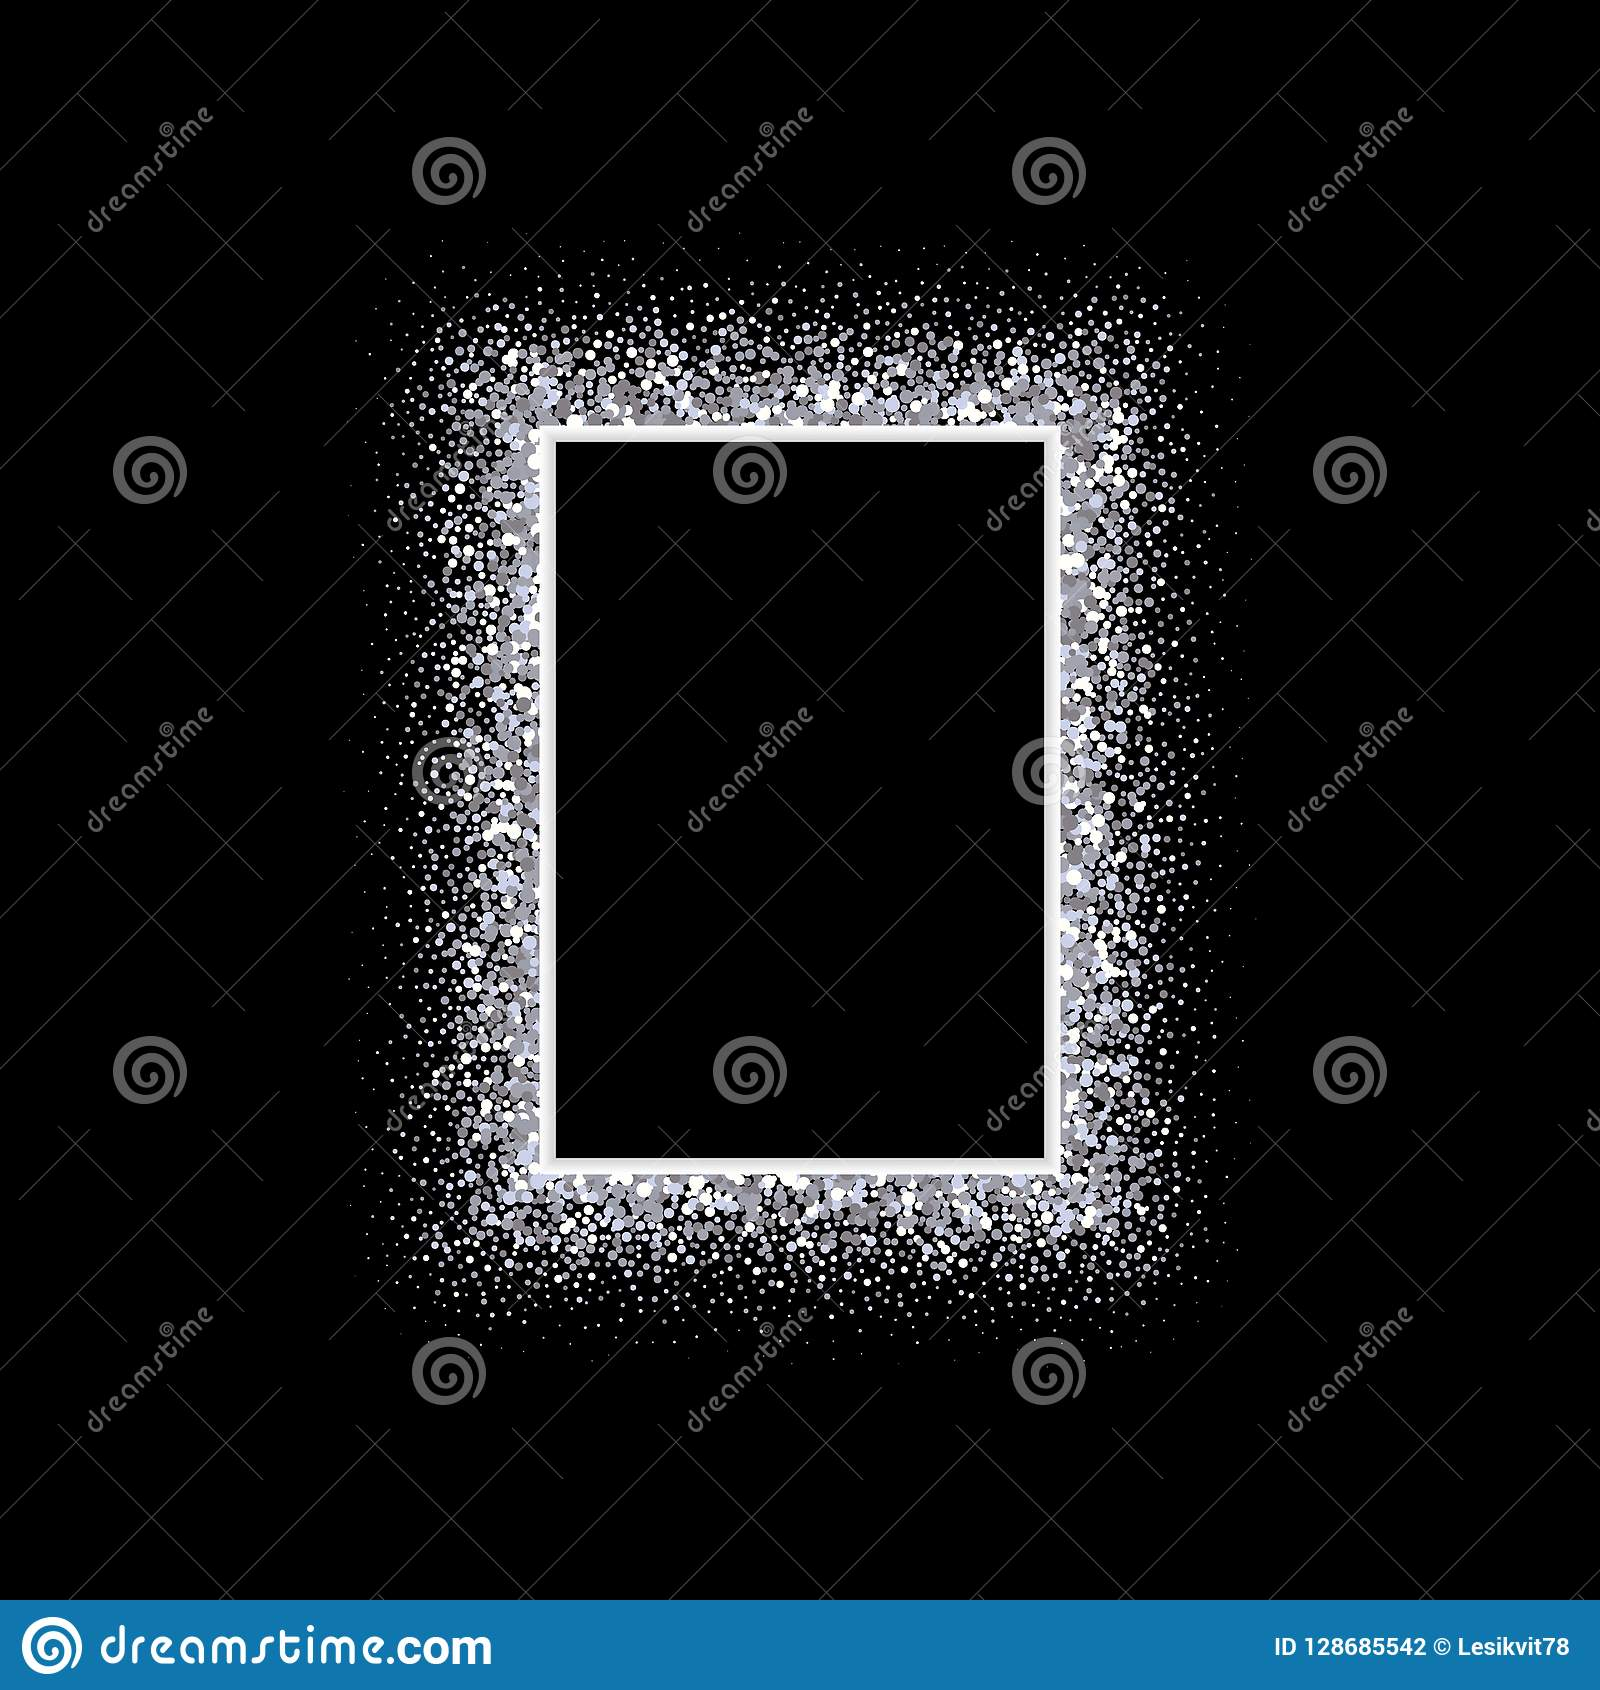 Glitters Background With Silver Glitter Frame Vector Decoration Great For Christmas And Birthday Cards Wedding Invitation Party Posters